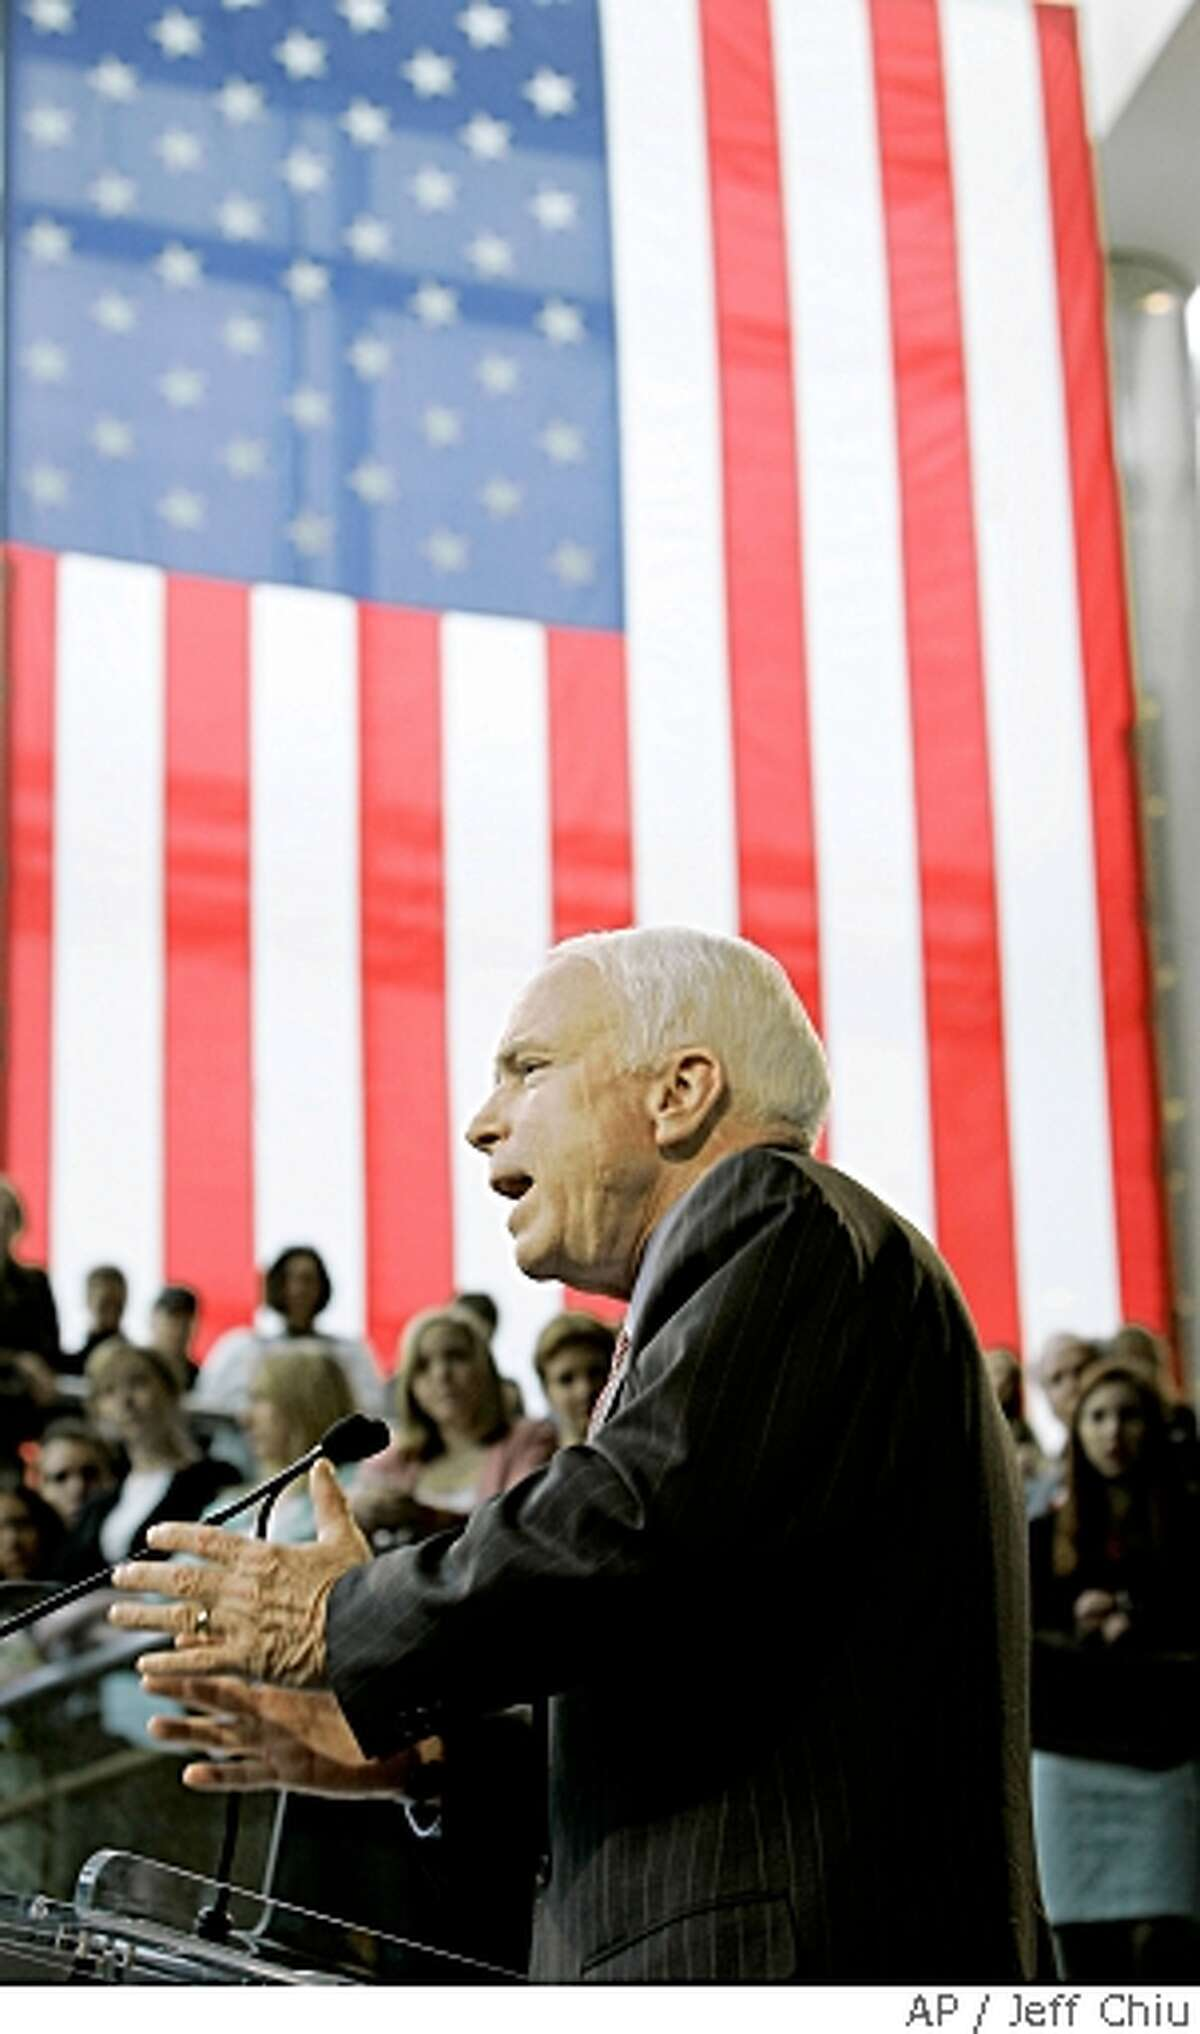 Republican presidential candidate, Sen. John McCain, R-Ariz., speaks at Denver University on Tuesday, May 27, 2008, in Denver, Colo. During his speech McCain faulted both Republicans and Democrats on their efforts to control the proliferation of nuclear weapons. (AP Photo/Jeff Chiu)